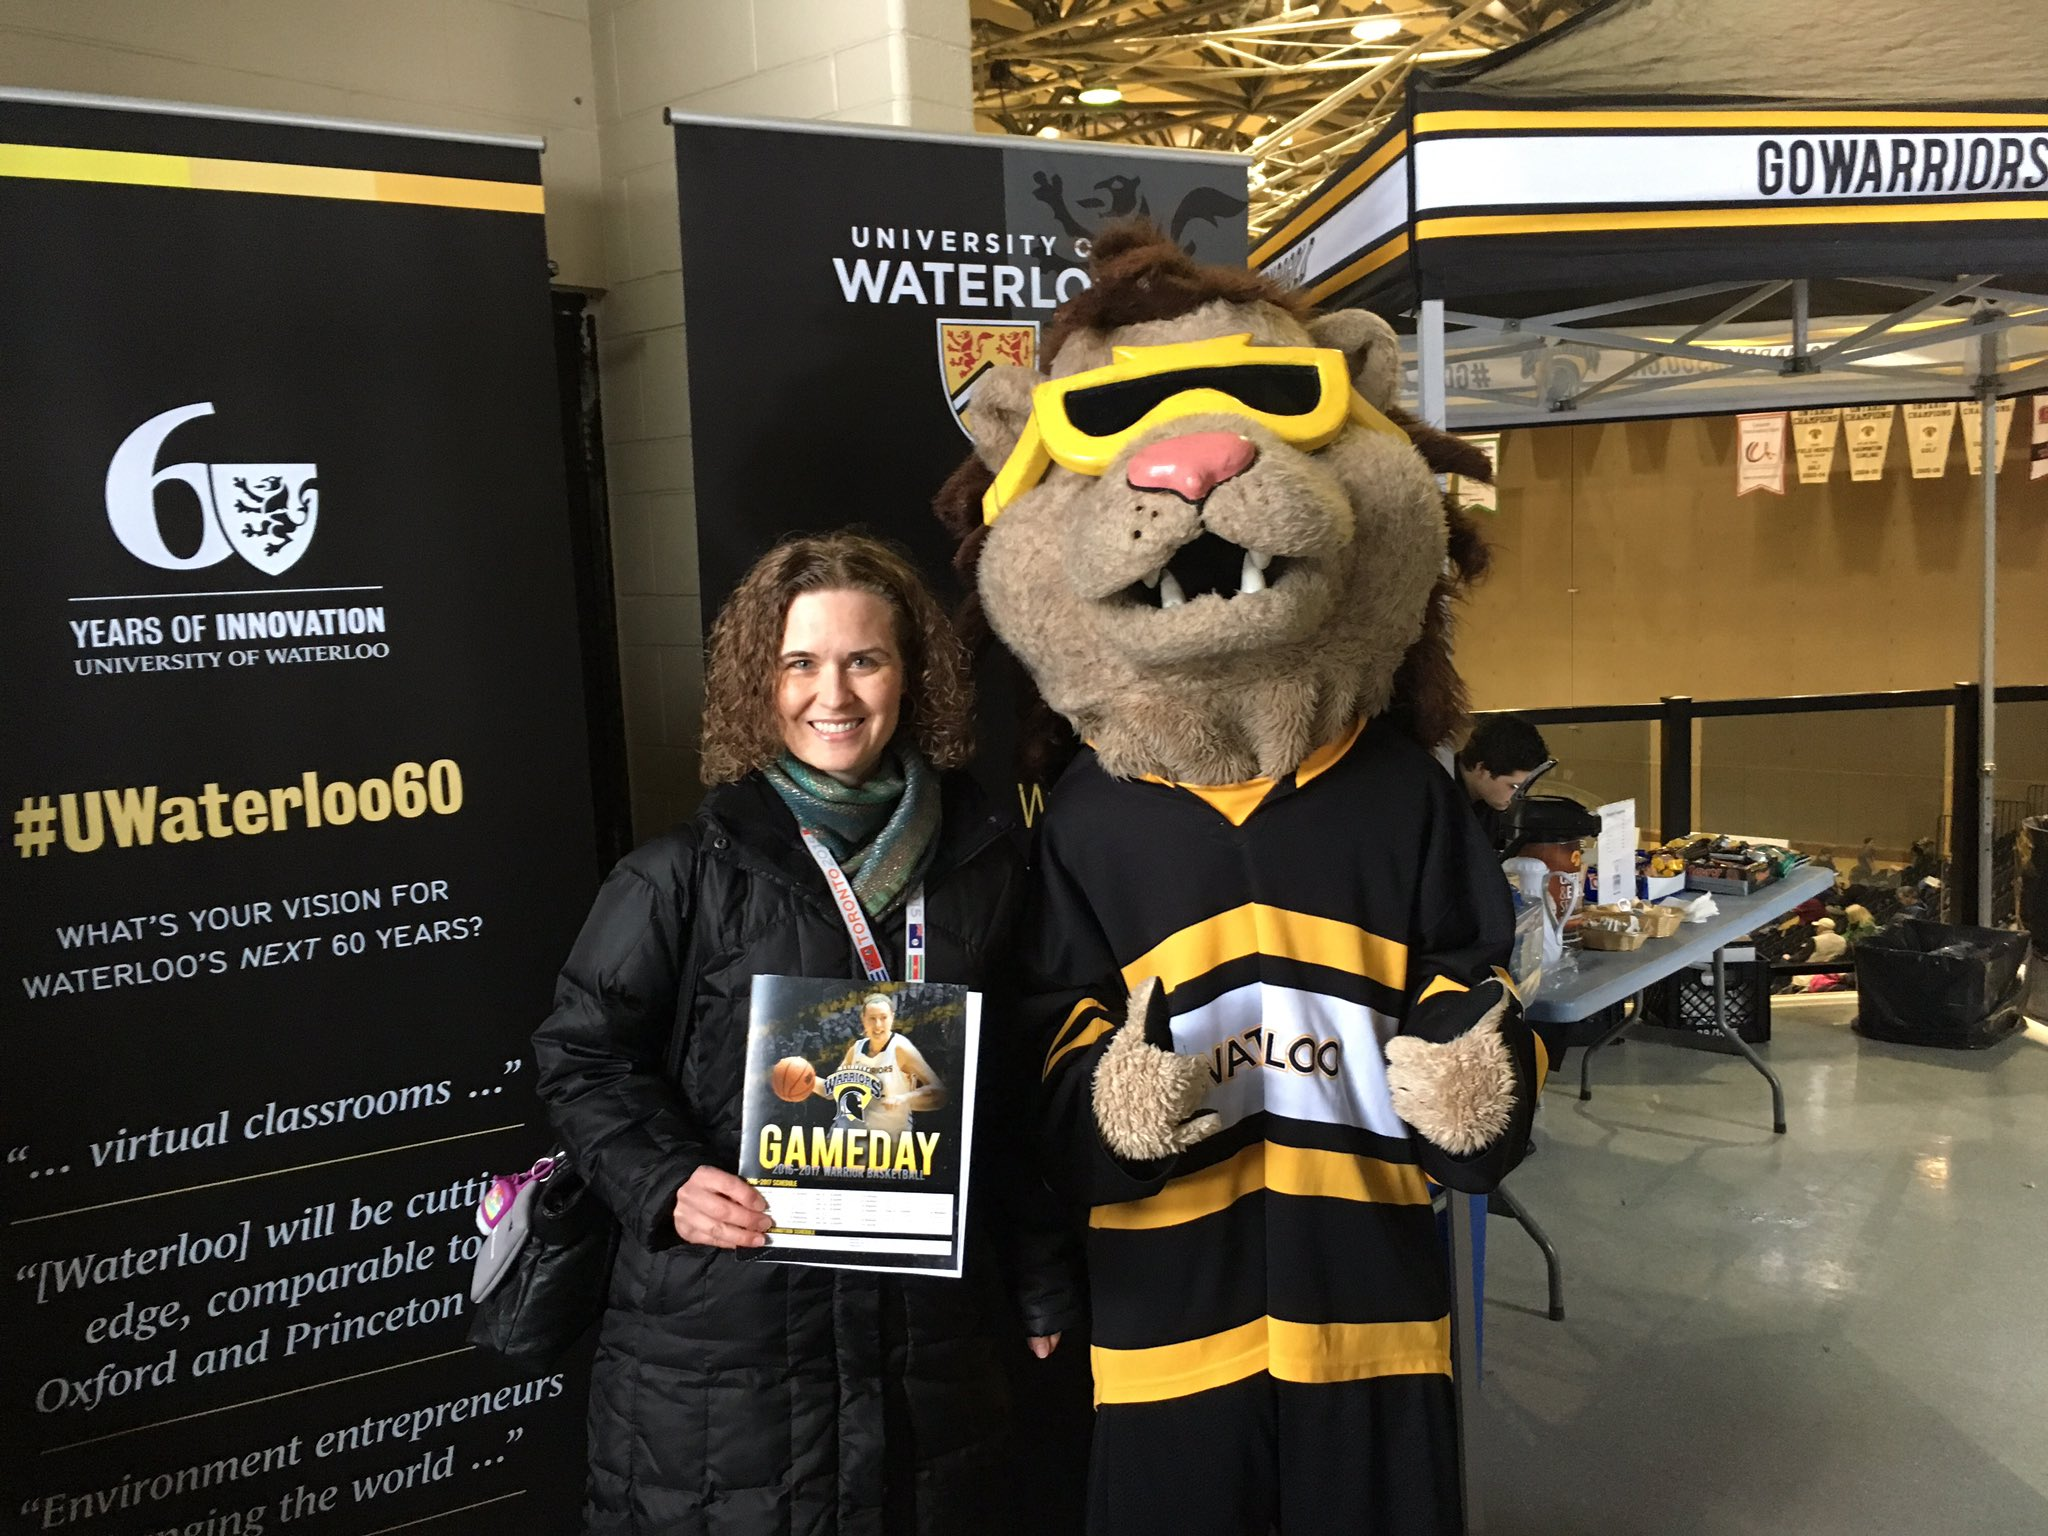 AWESOME to be back at the PAC for #UWaterlooFAD. I'm enjoying the comfy #BlackandGold bleachers for today's basketball games. GO WARRIORS! https://t.co/9tZFwPSUUg